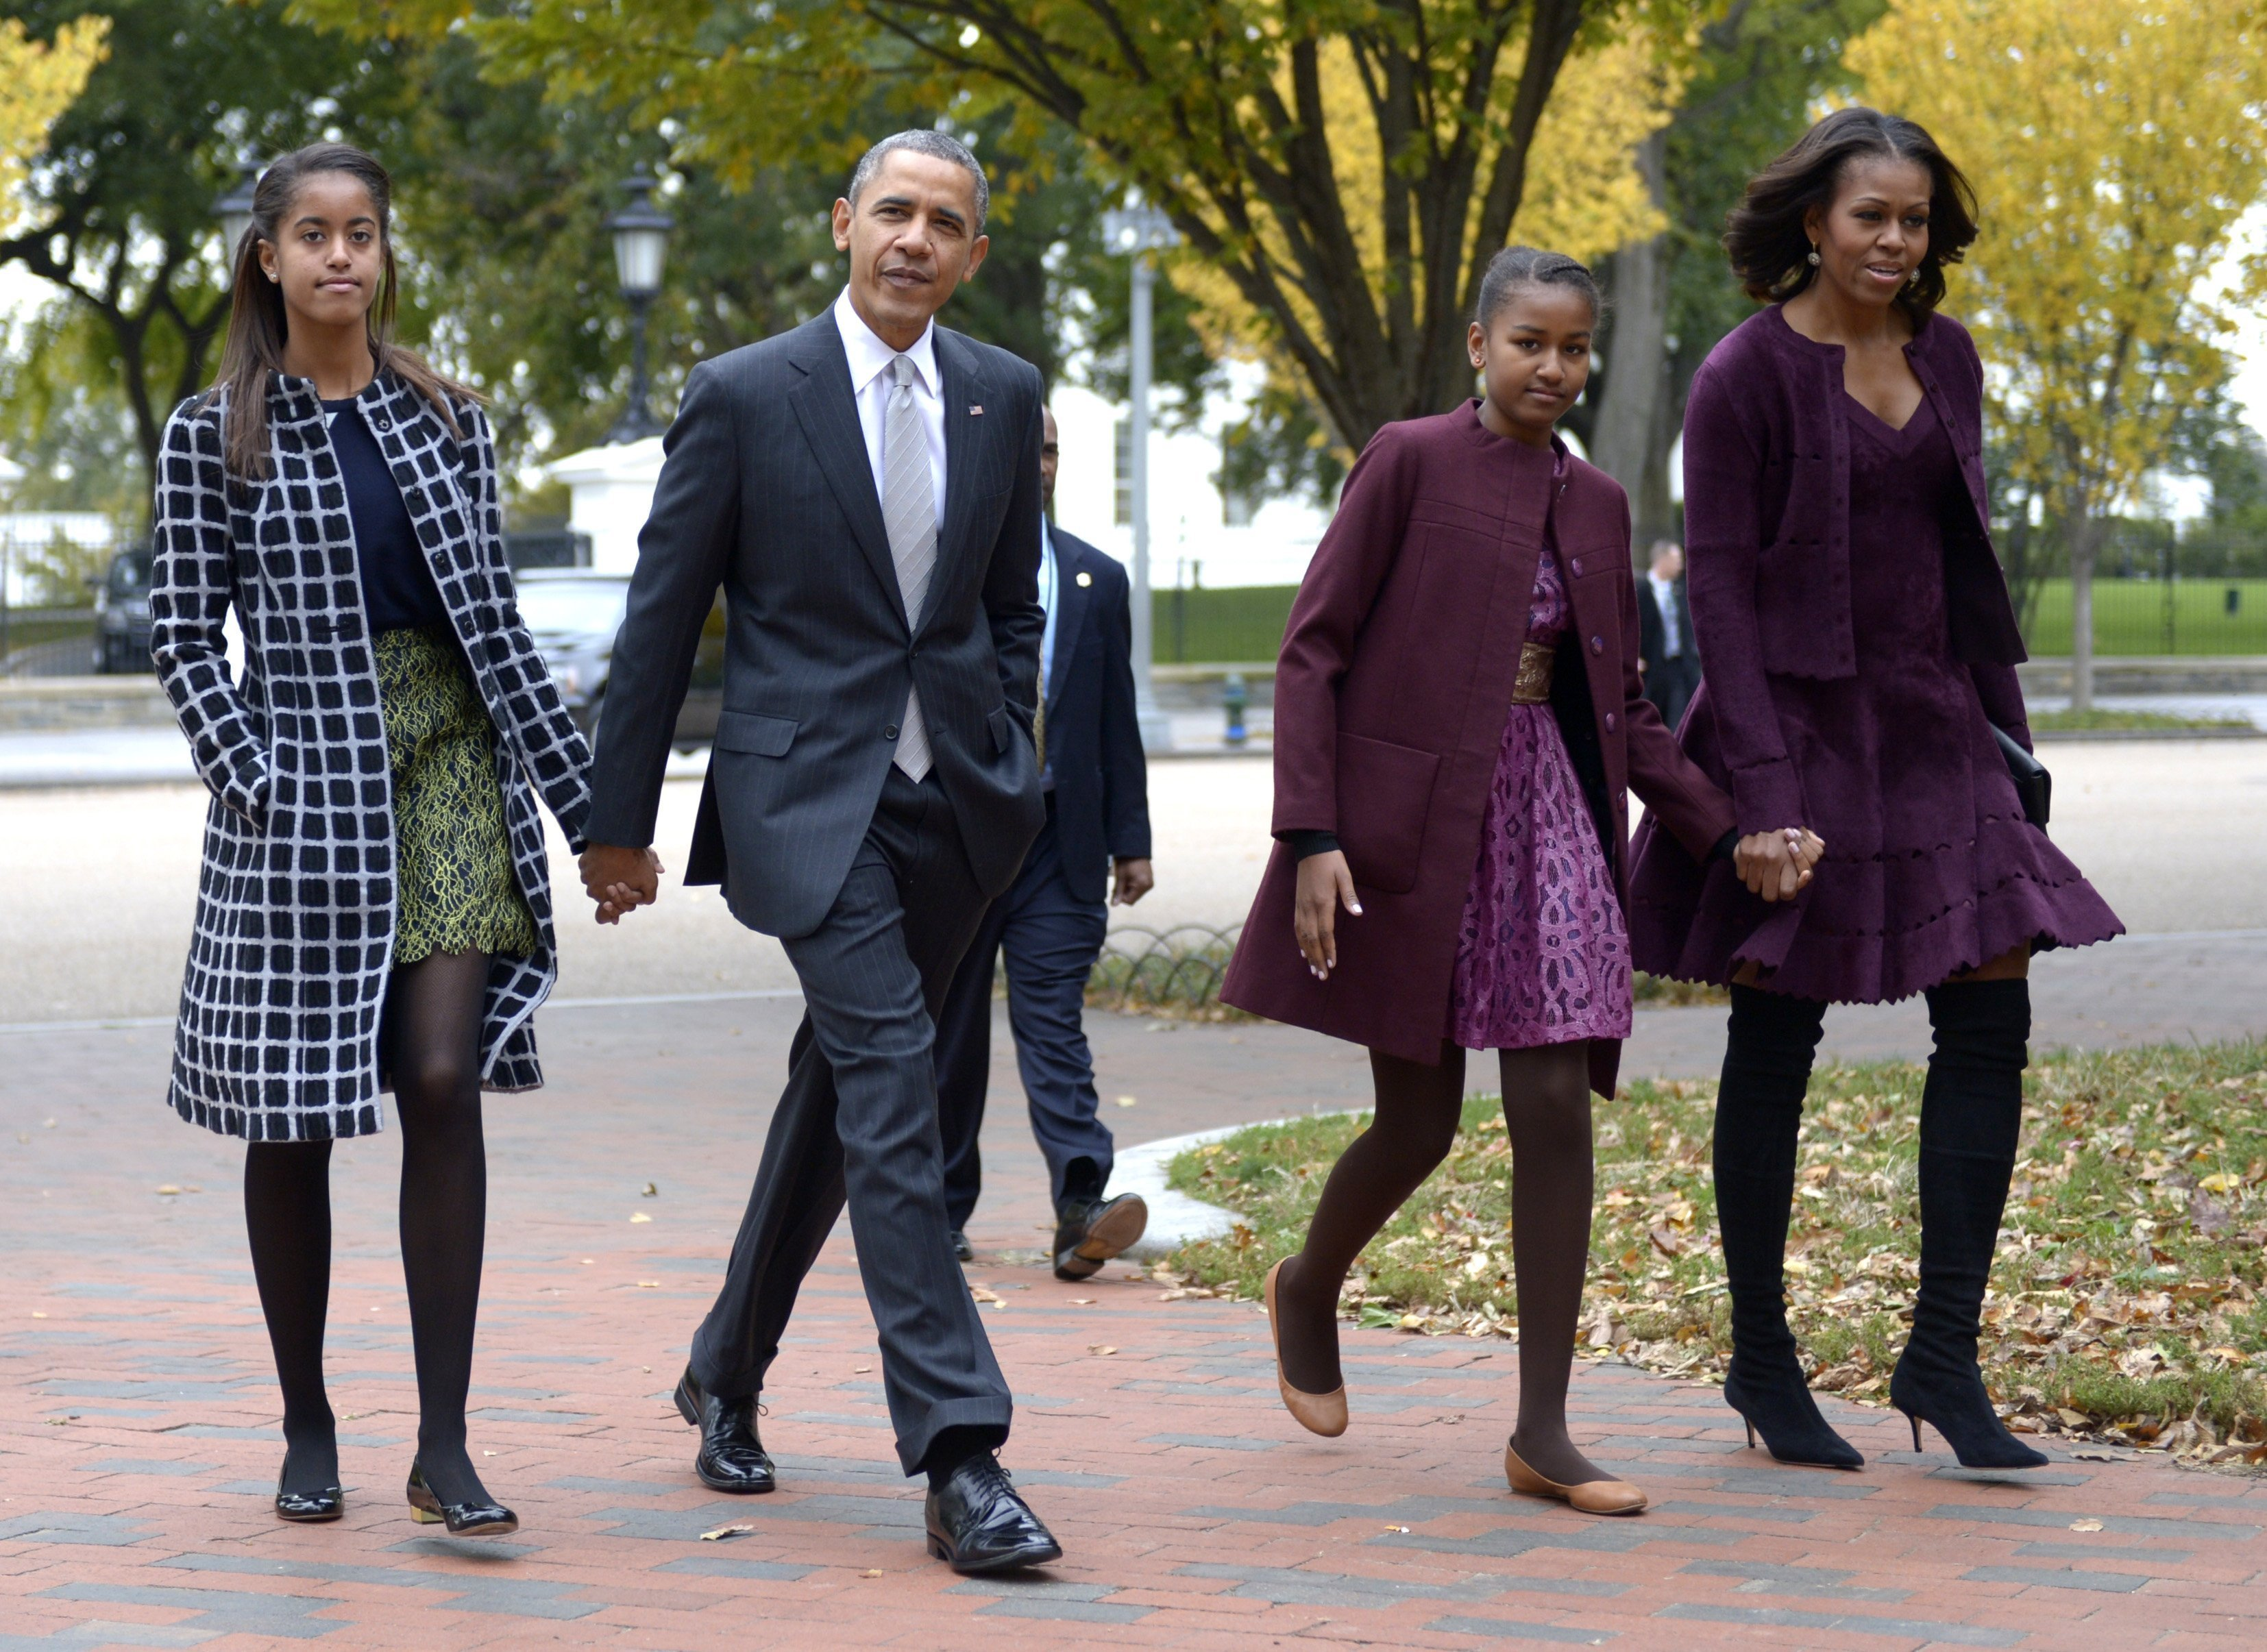 The Obamas walk through Lafayette Park to St John's Church, October 2013. | Photo: GettyImages/Global Images of Ukraine